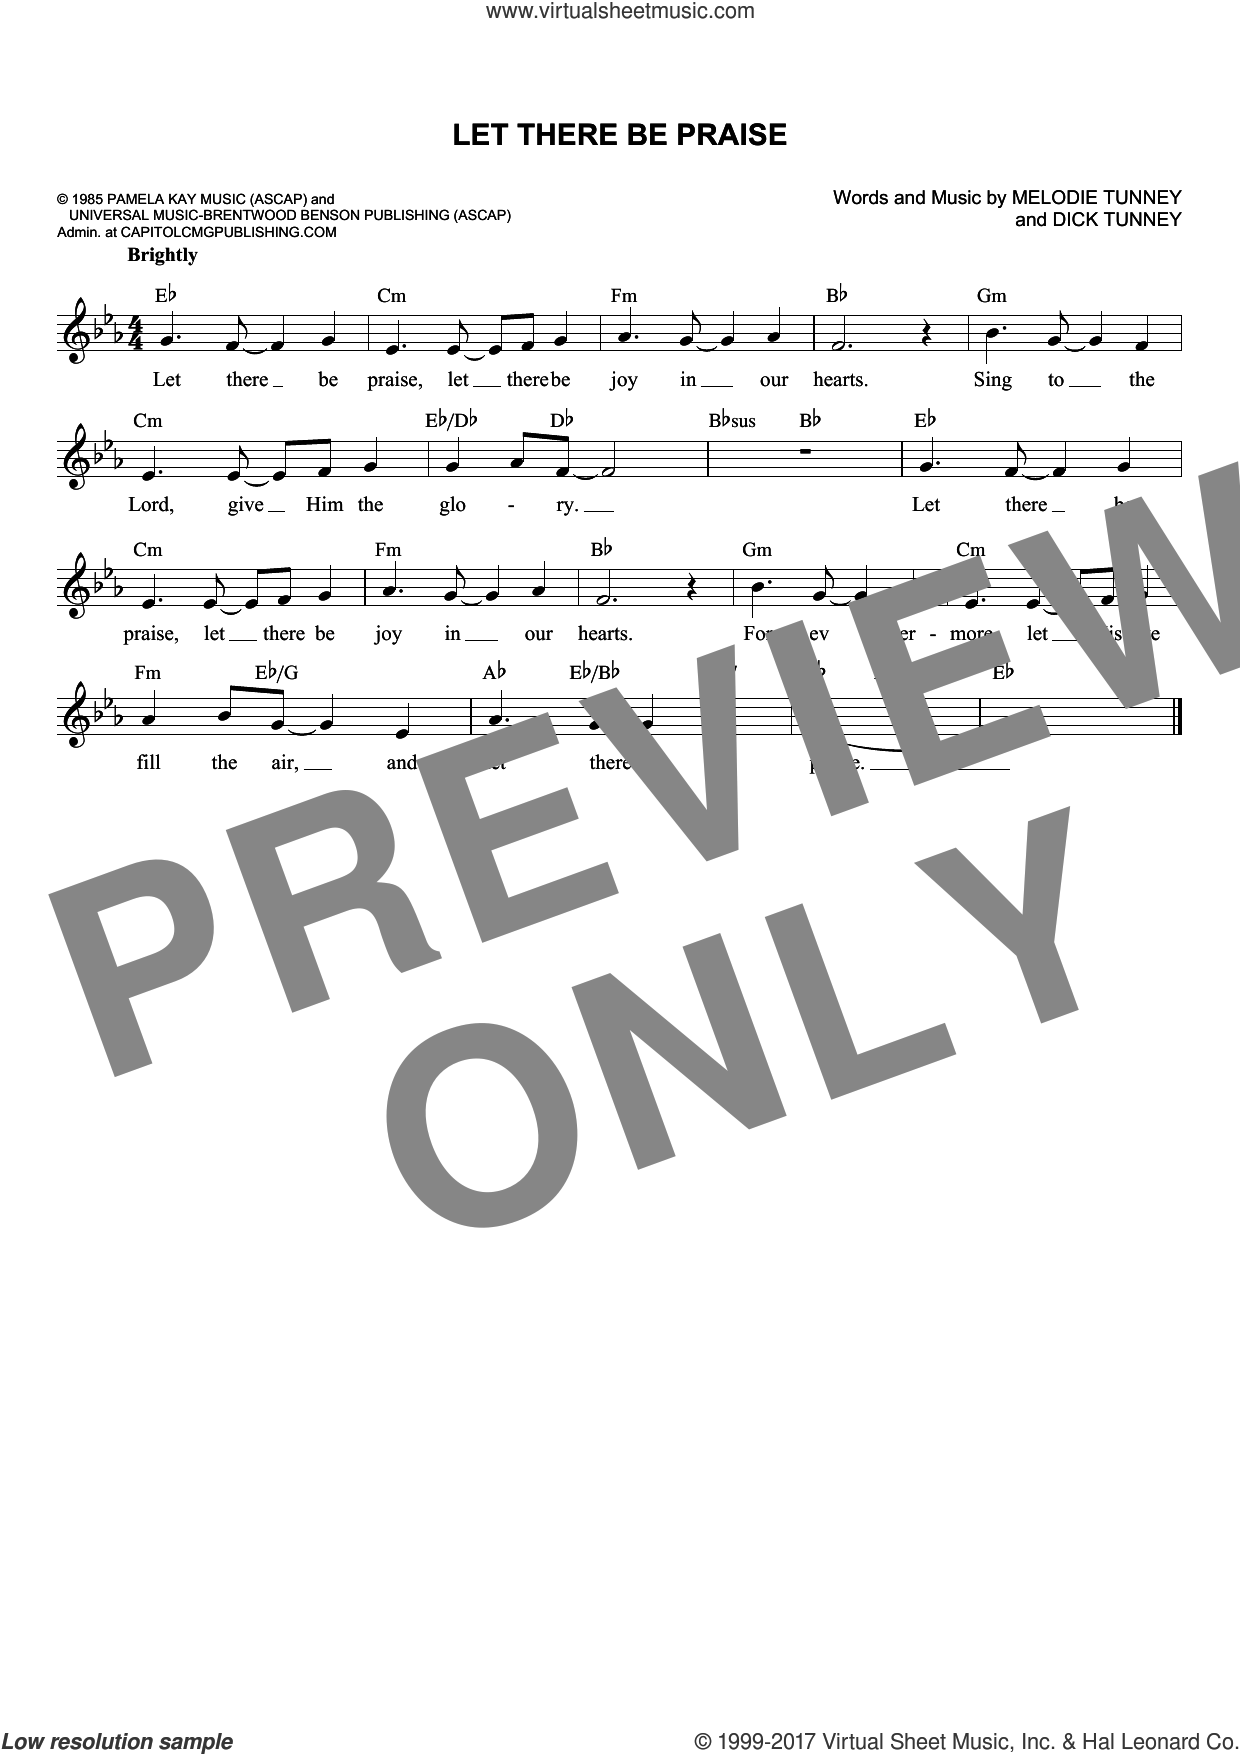 Let There Be Praise sheet music for voice and other instruments (fake book) by Sandi Patty, Dick Tunney and Melodie Tunney, intermediate skill level